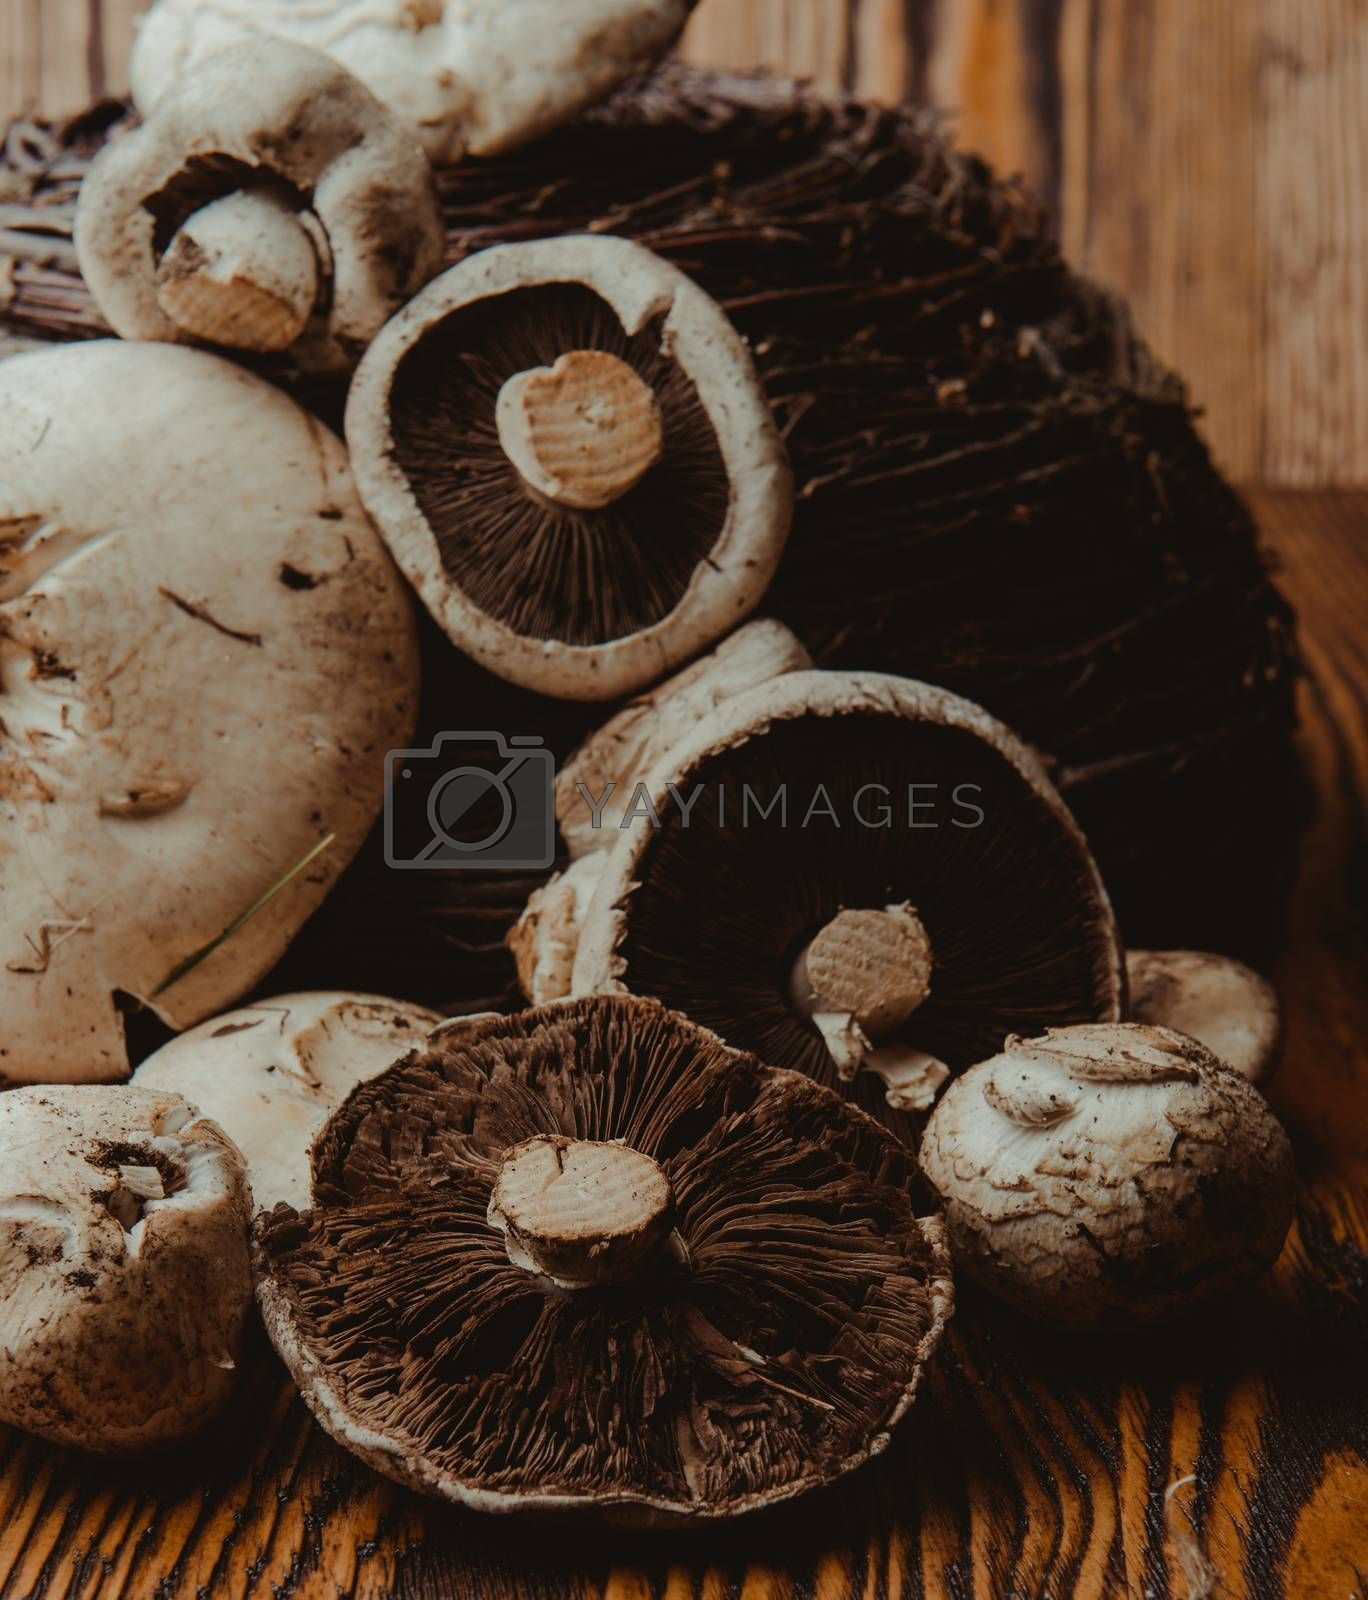 composition poured olive oil, mushrooms, garlic on wooden background. healthy food